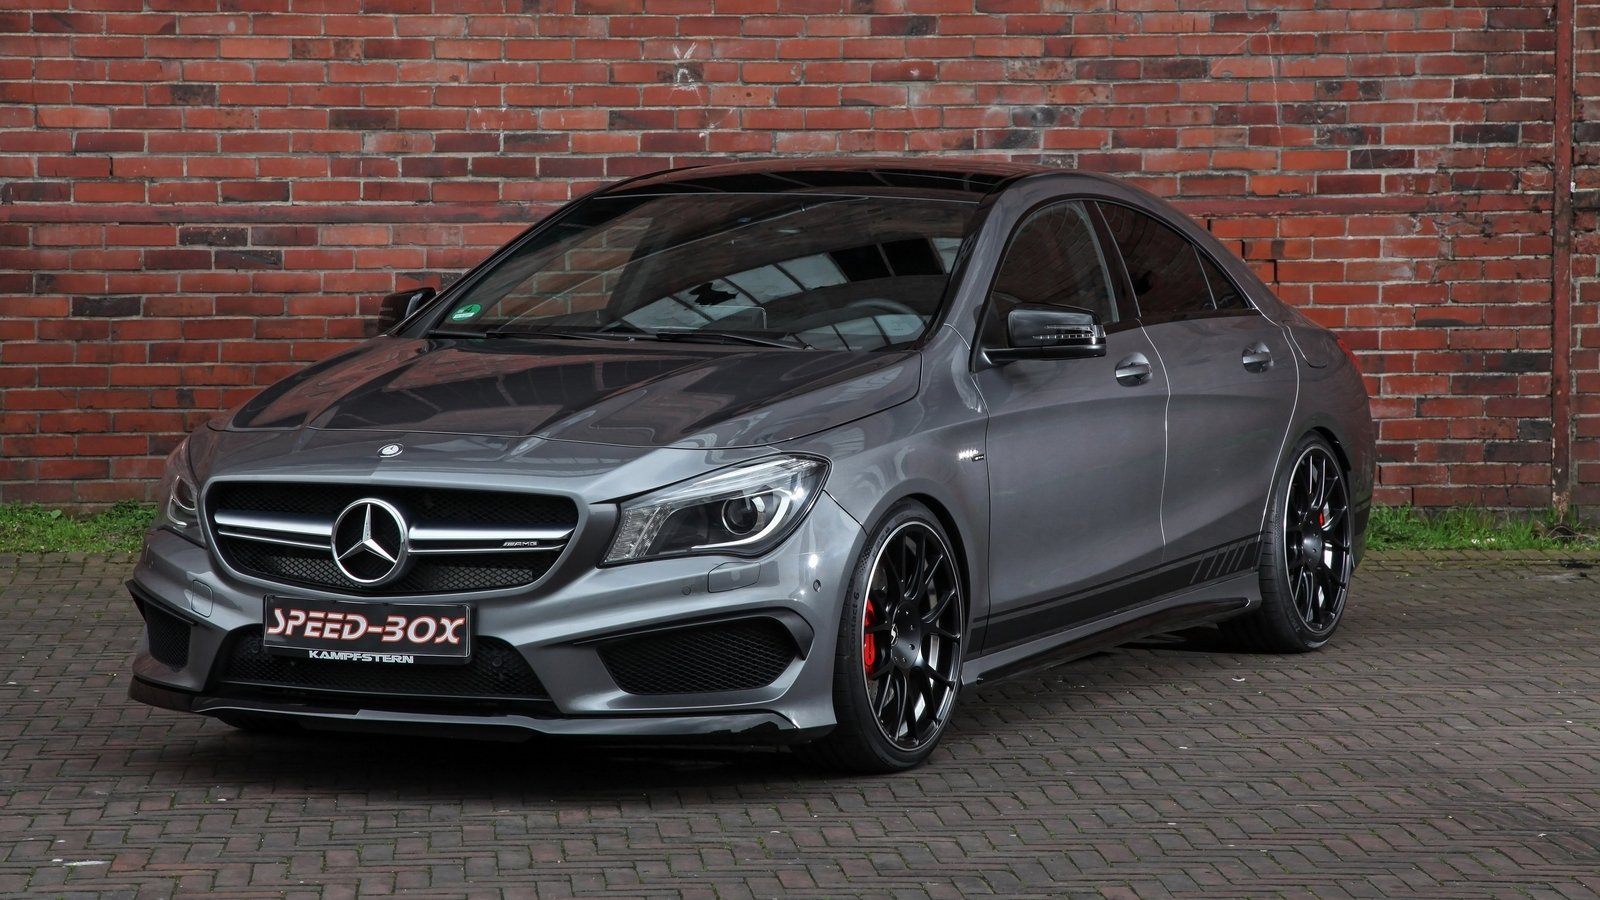 Schmidt revolution mercedes amg cla45 3 tuning for 2016 mercedes benz cla45 amg